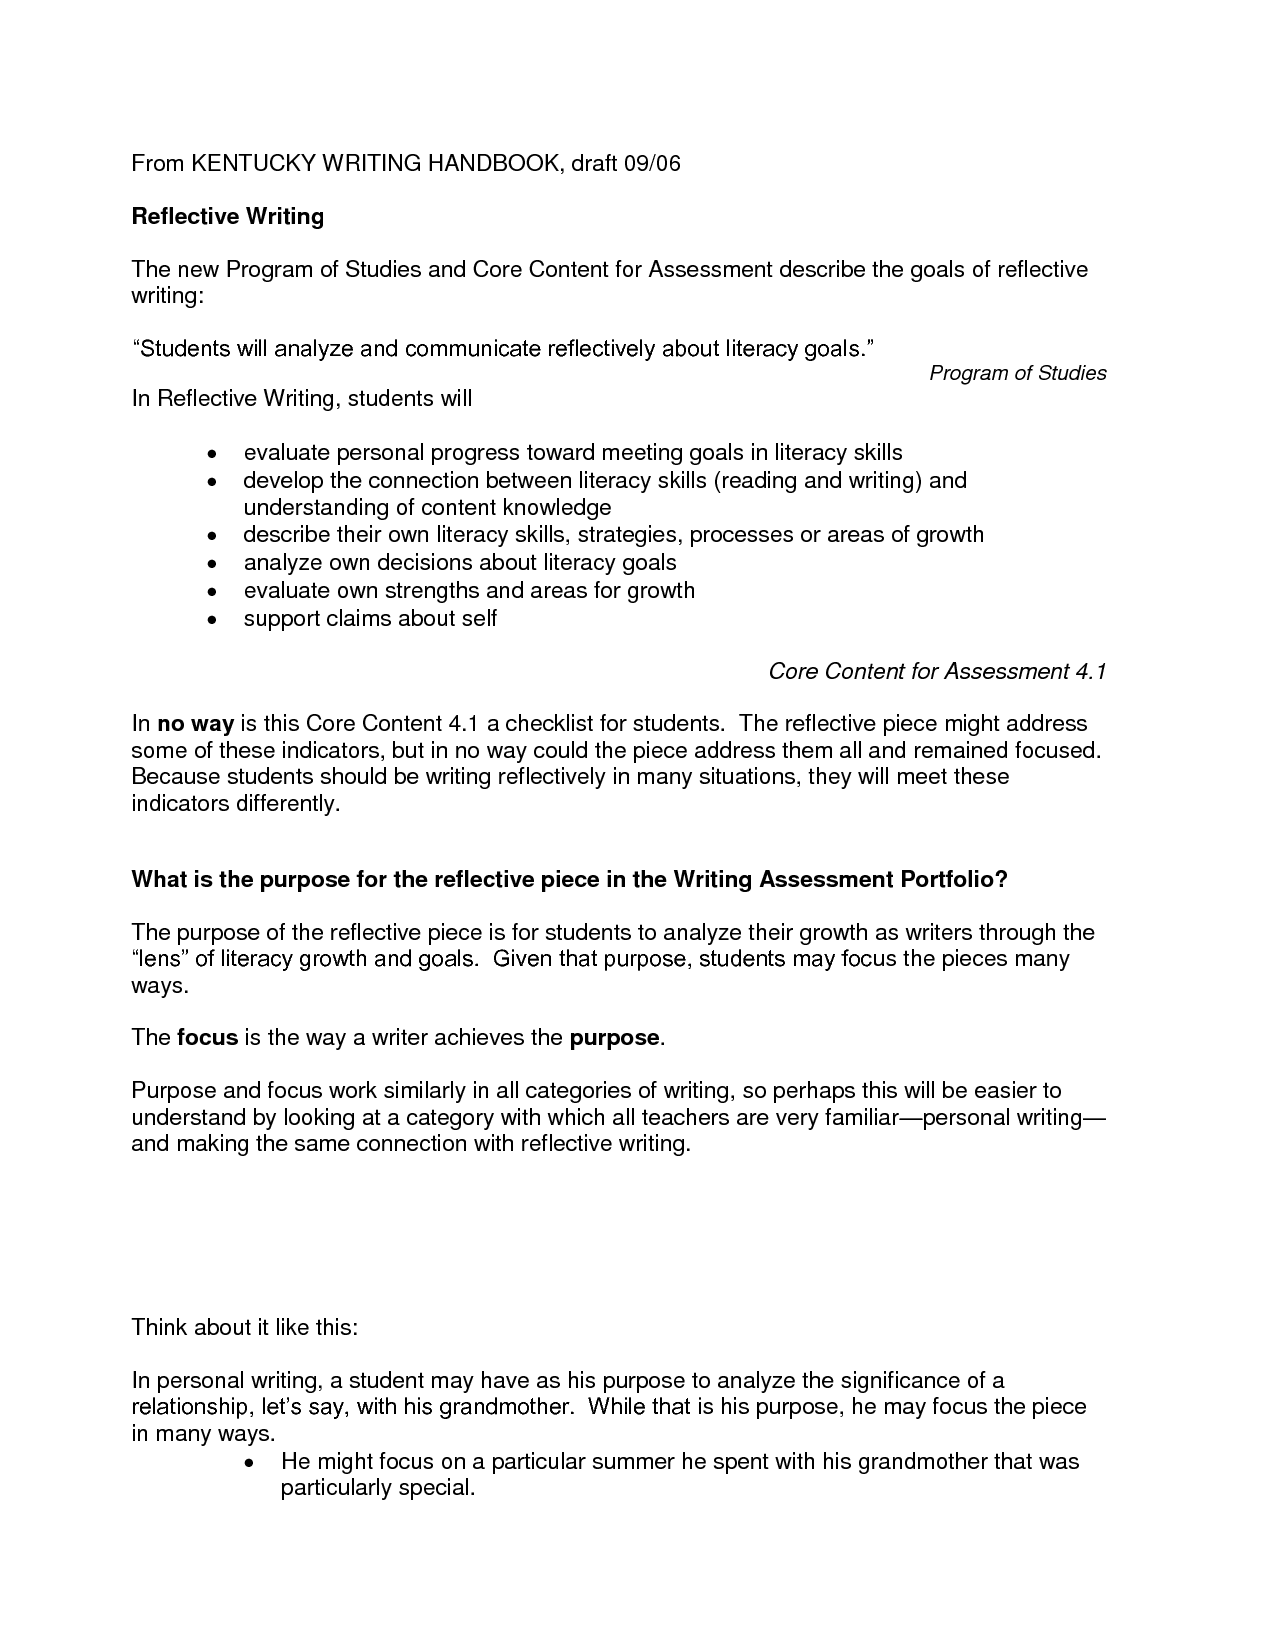 009 Reflective Essay Definition Example Nursing Writing 576466 Excellent Pdf Meaning In Telugu Personal Reflection Full